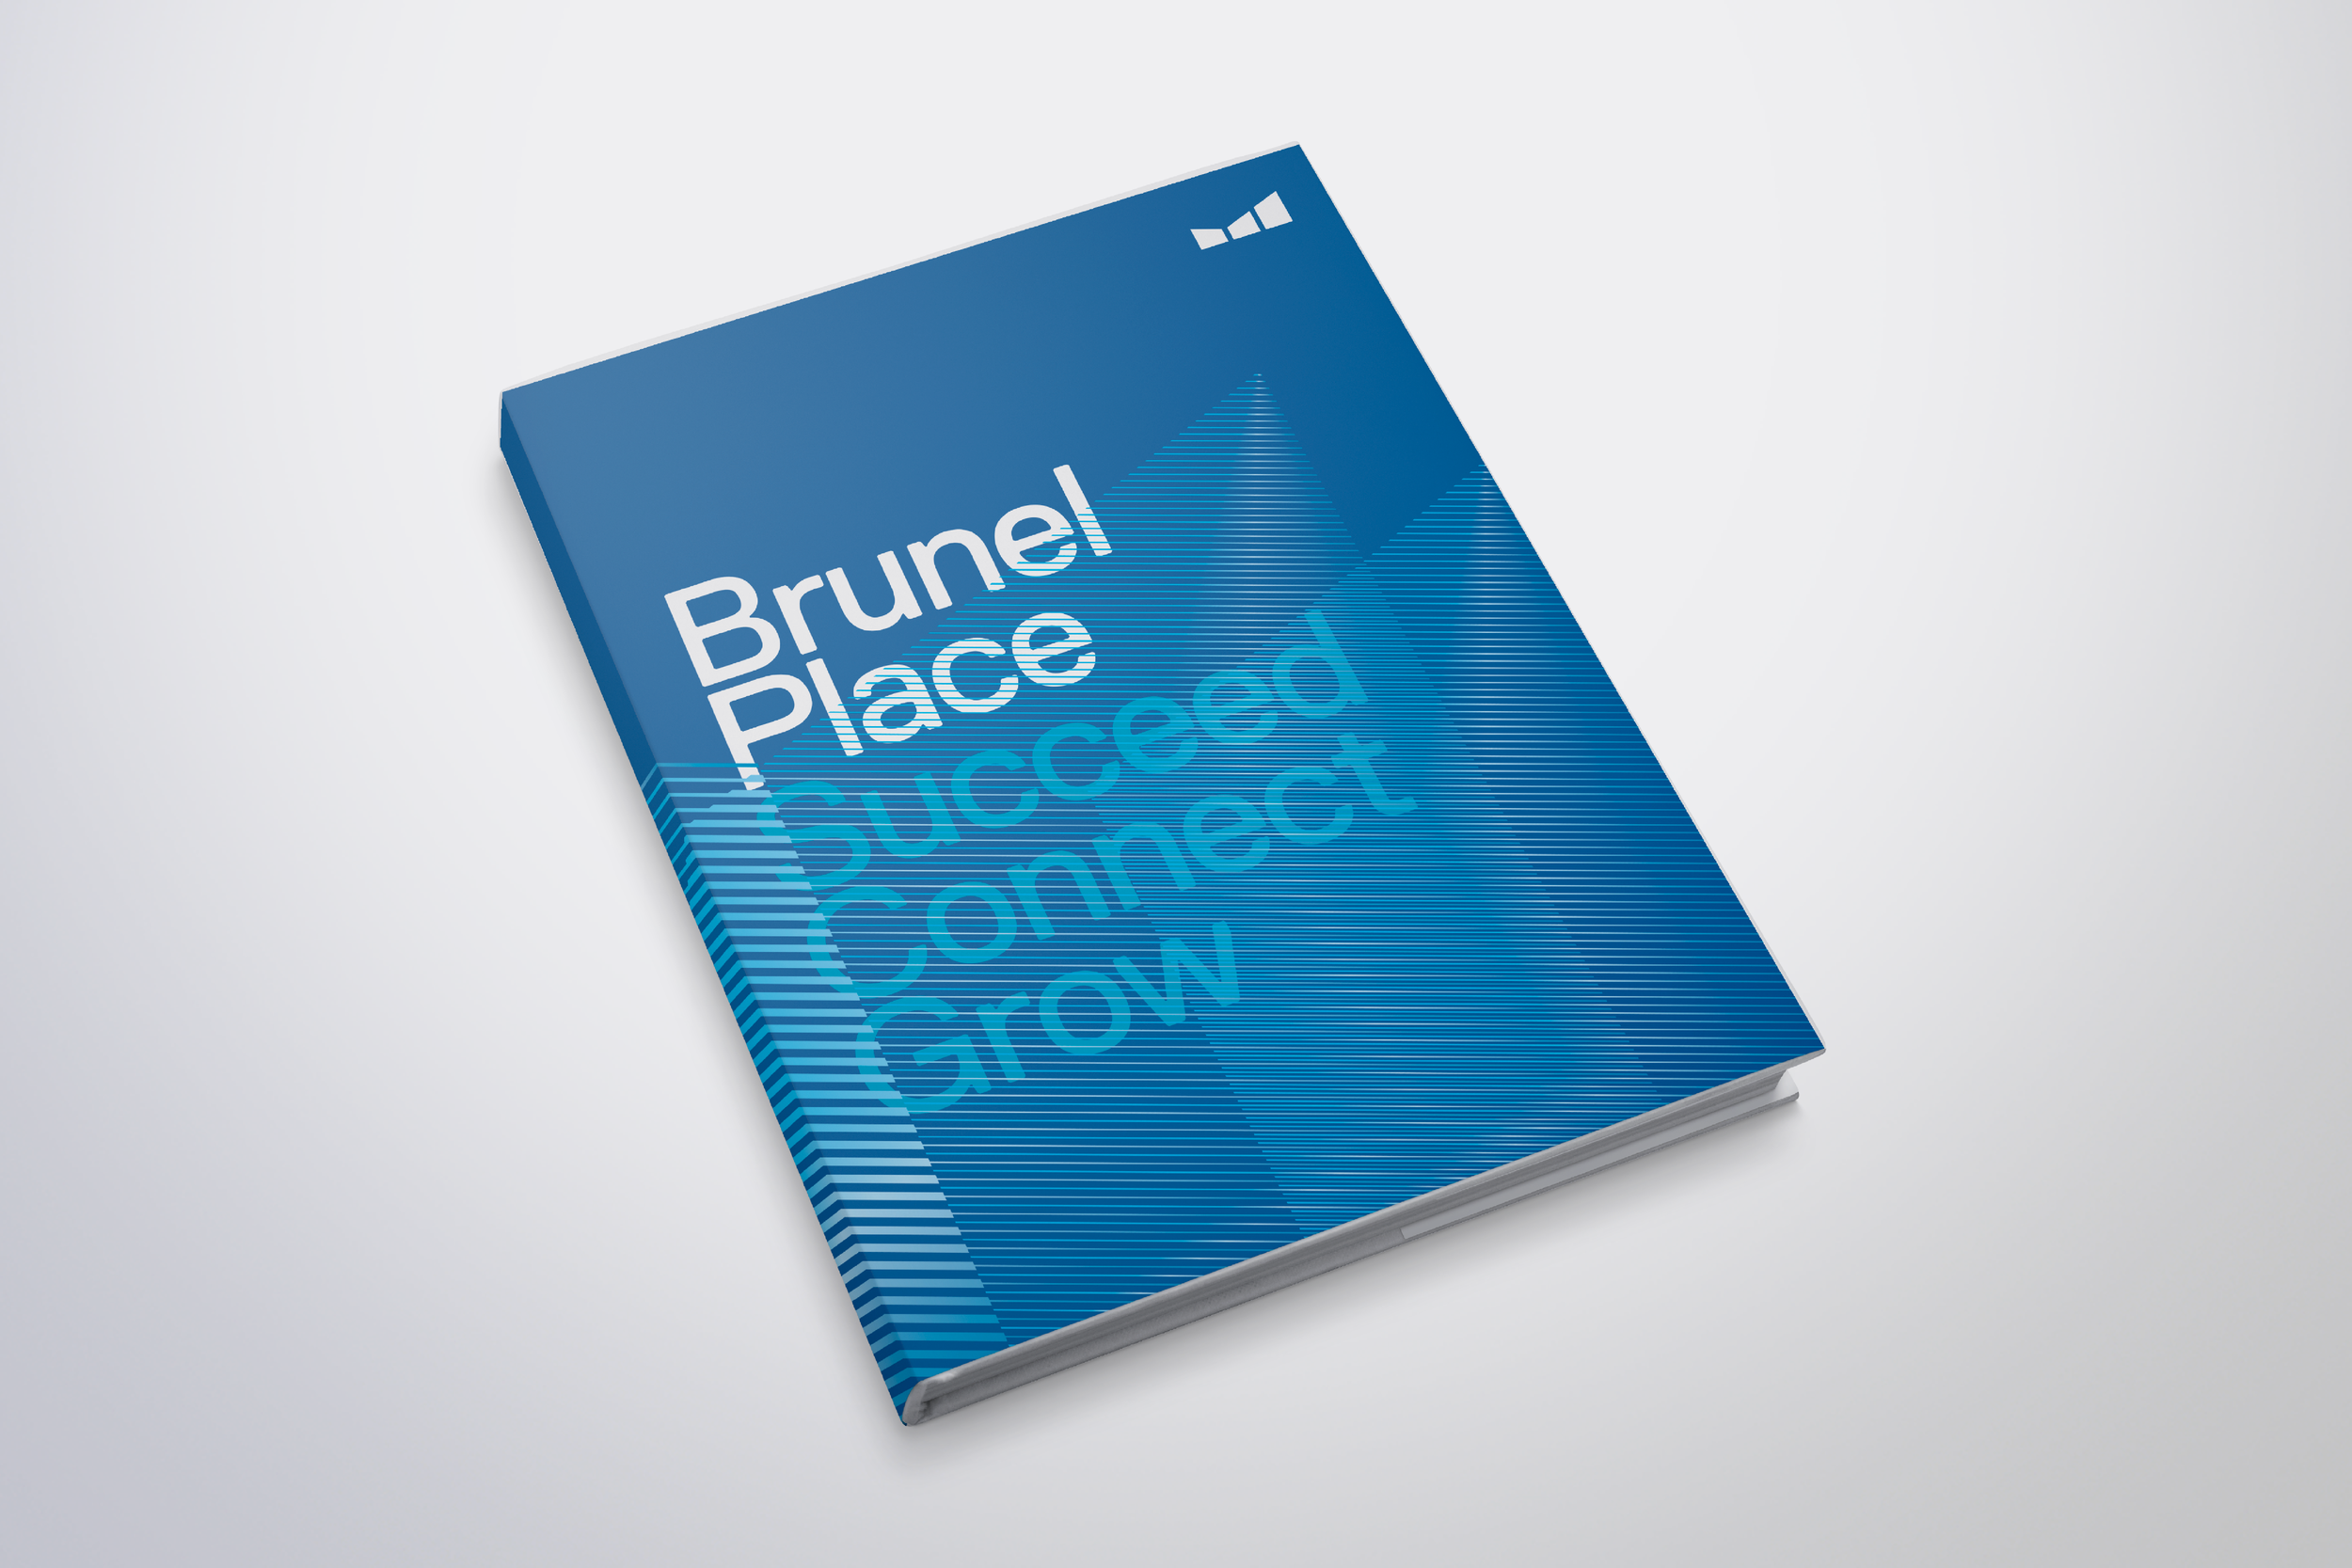 Brunel_Place_identity14.png